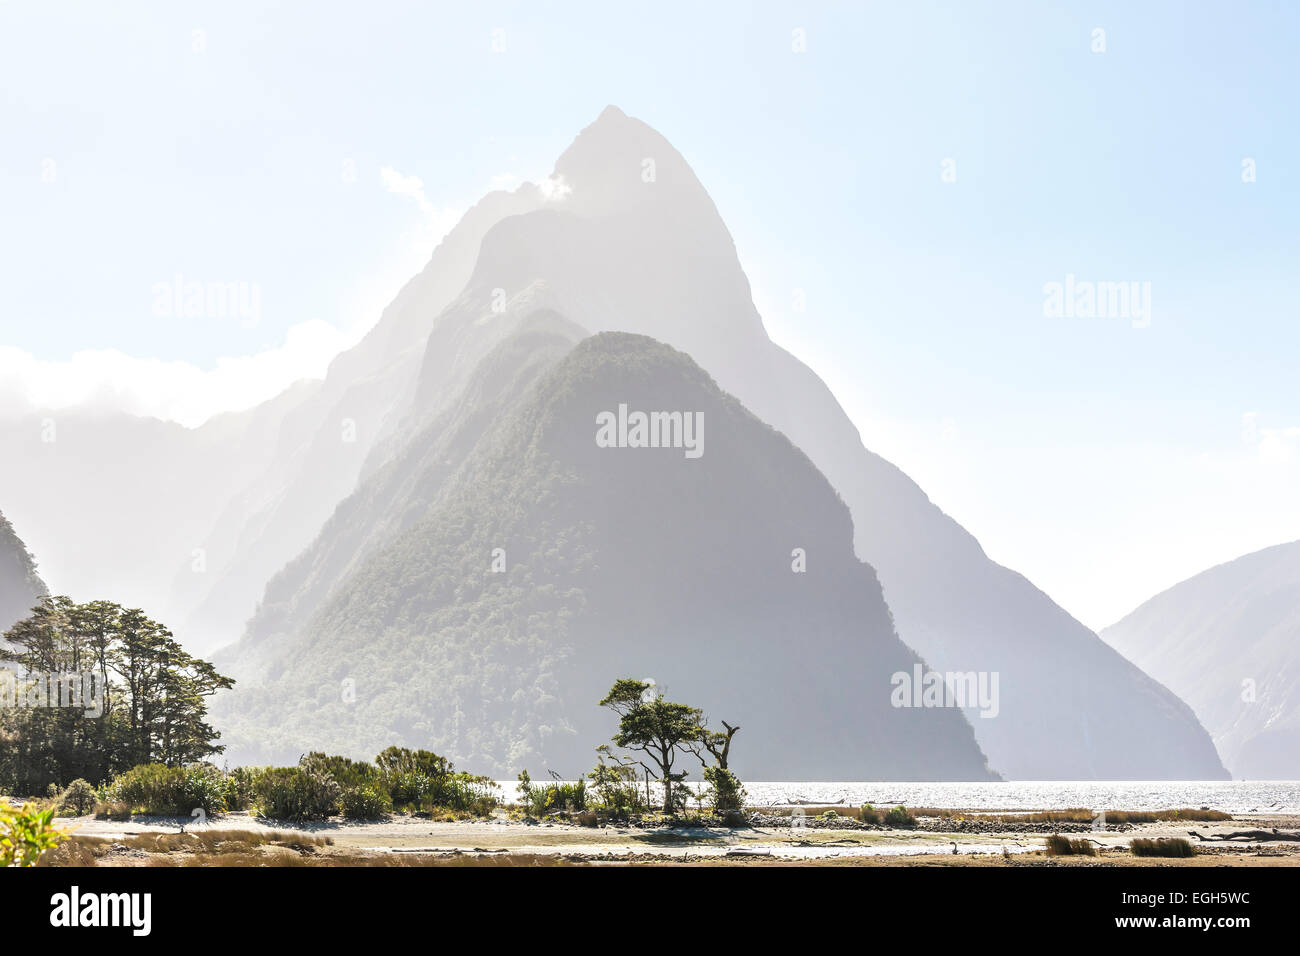 new-zealand-milford-sound-with-mitre-peak-in-fiordland-national-park-EGH5WC.jpg